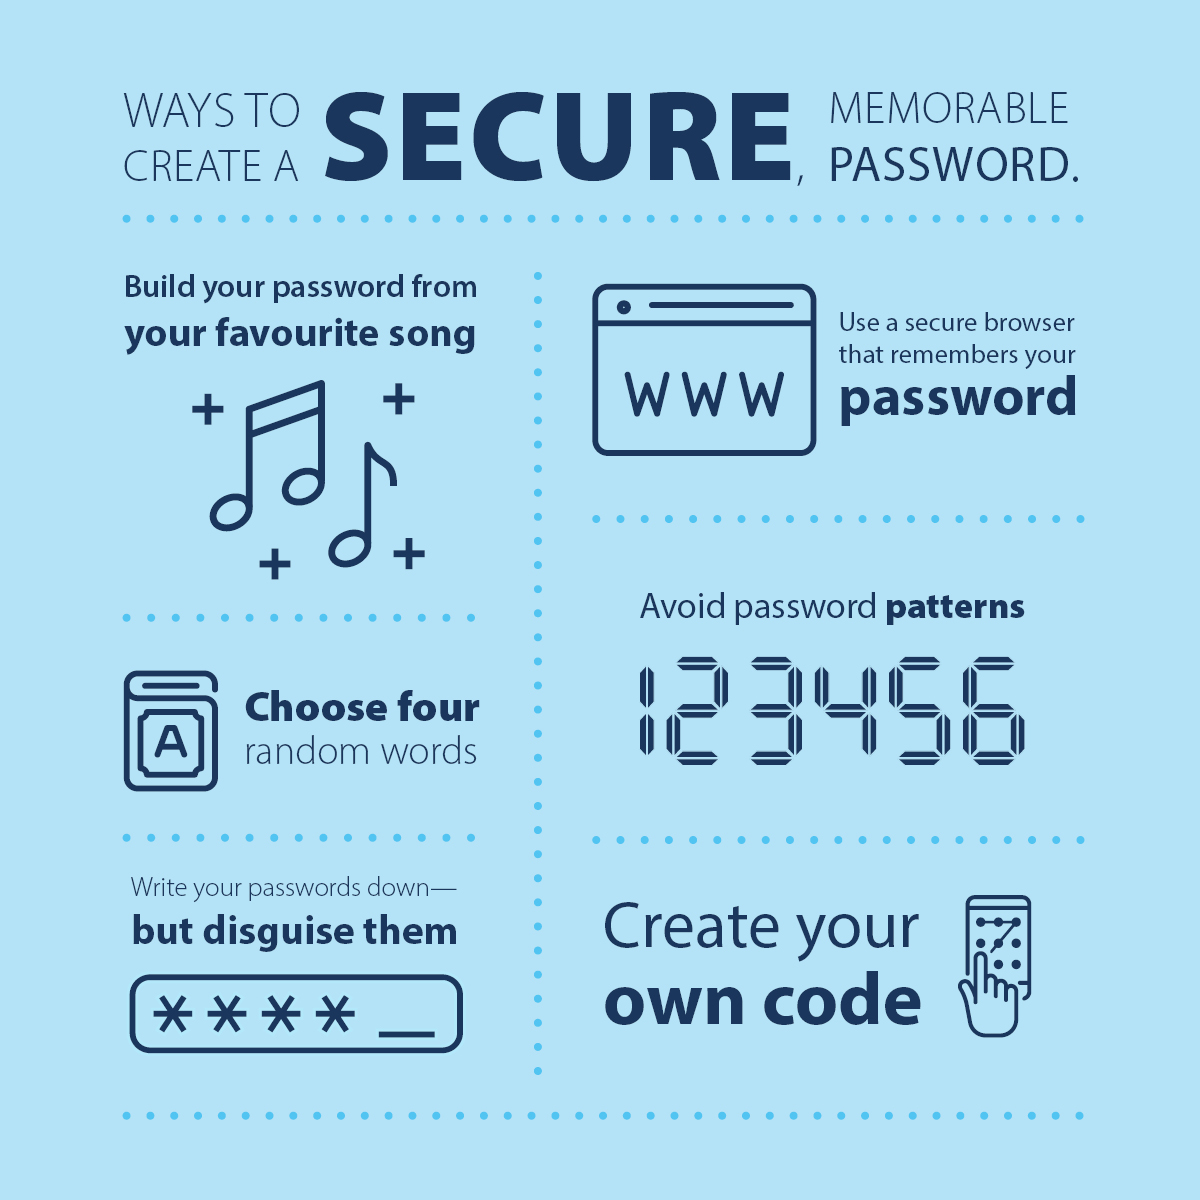 An infographic images providing tips on how to create a secure password. Tips include lyrics from a favourite song, choosing four random words, if you have to write them down disguise them, use a browser that stores passwords, avoid typical patterns such as 123456 and finally creating a passcode pattern